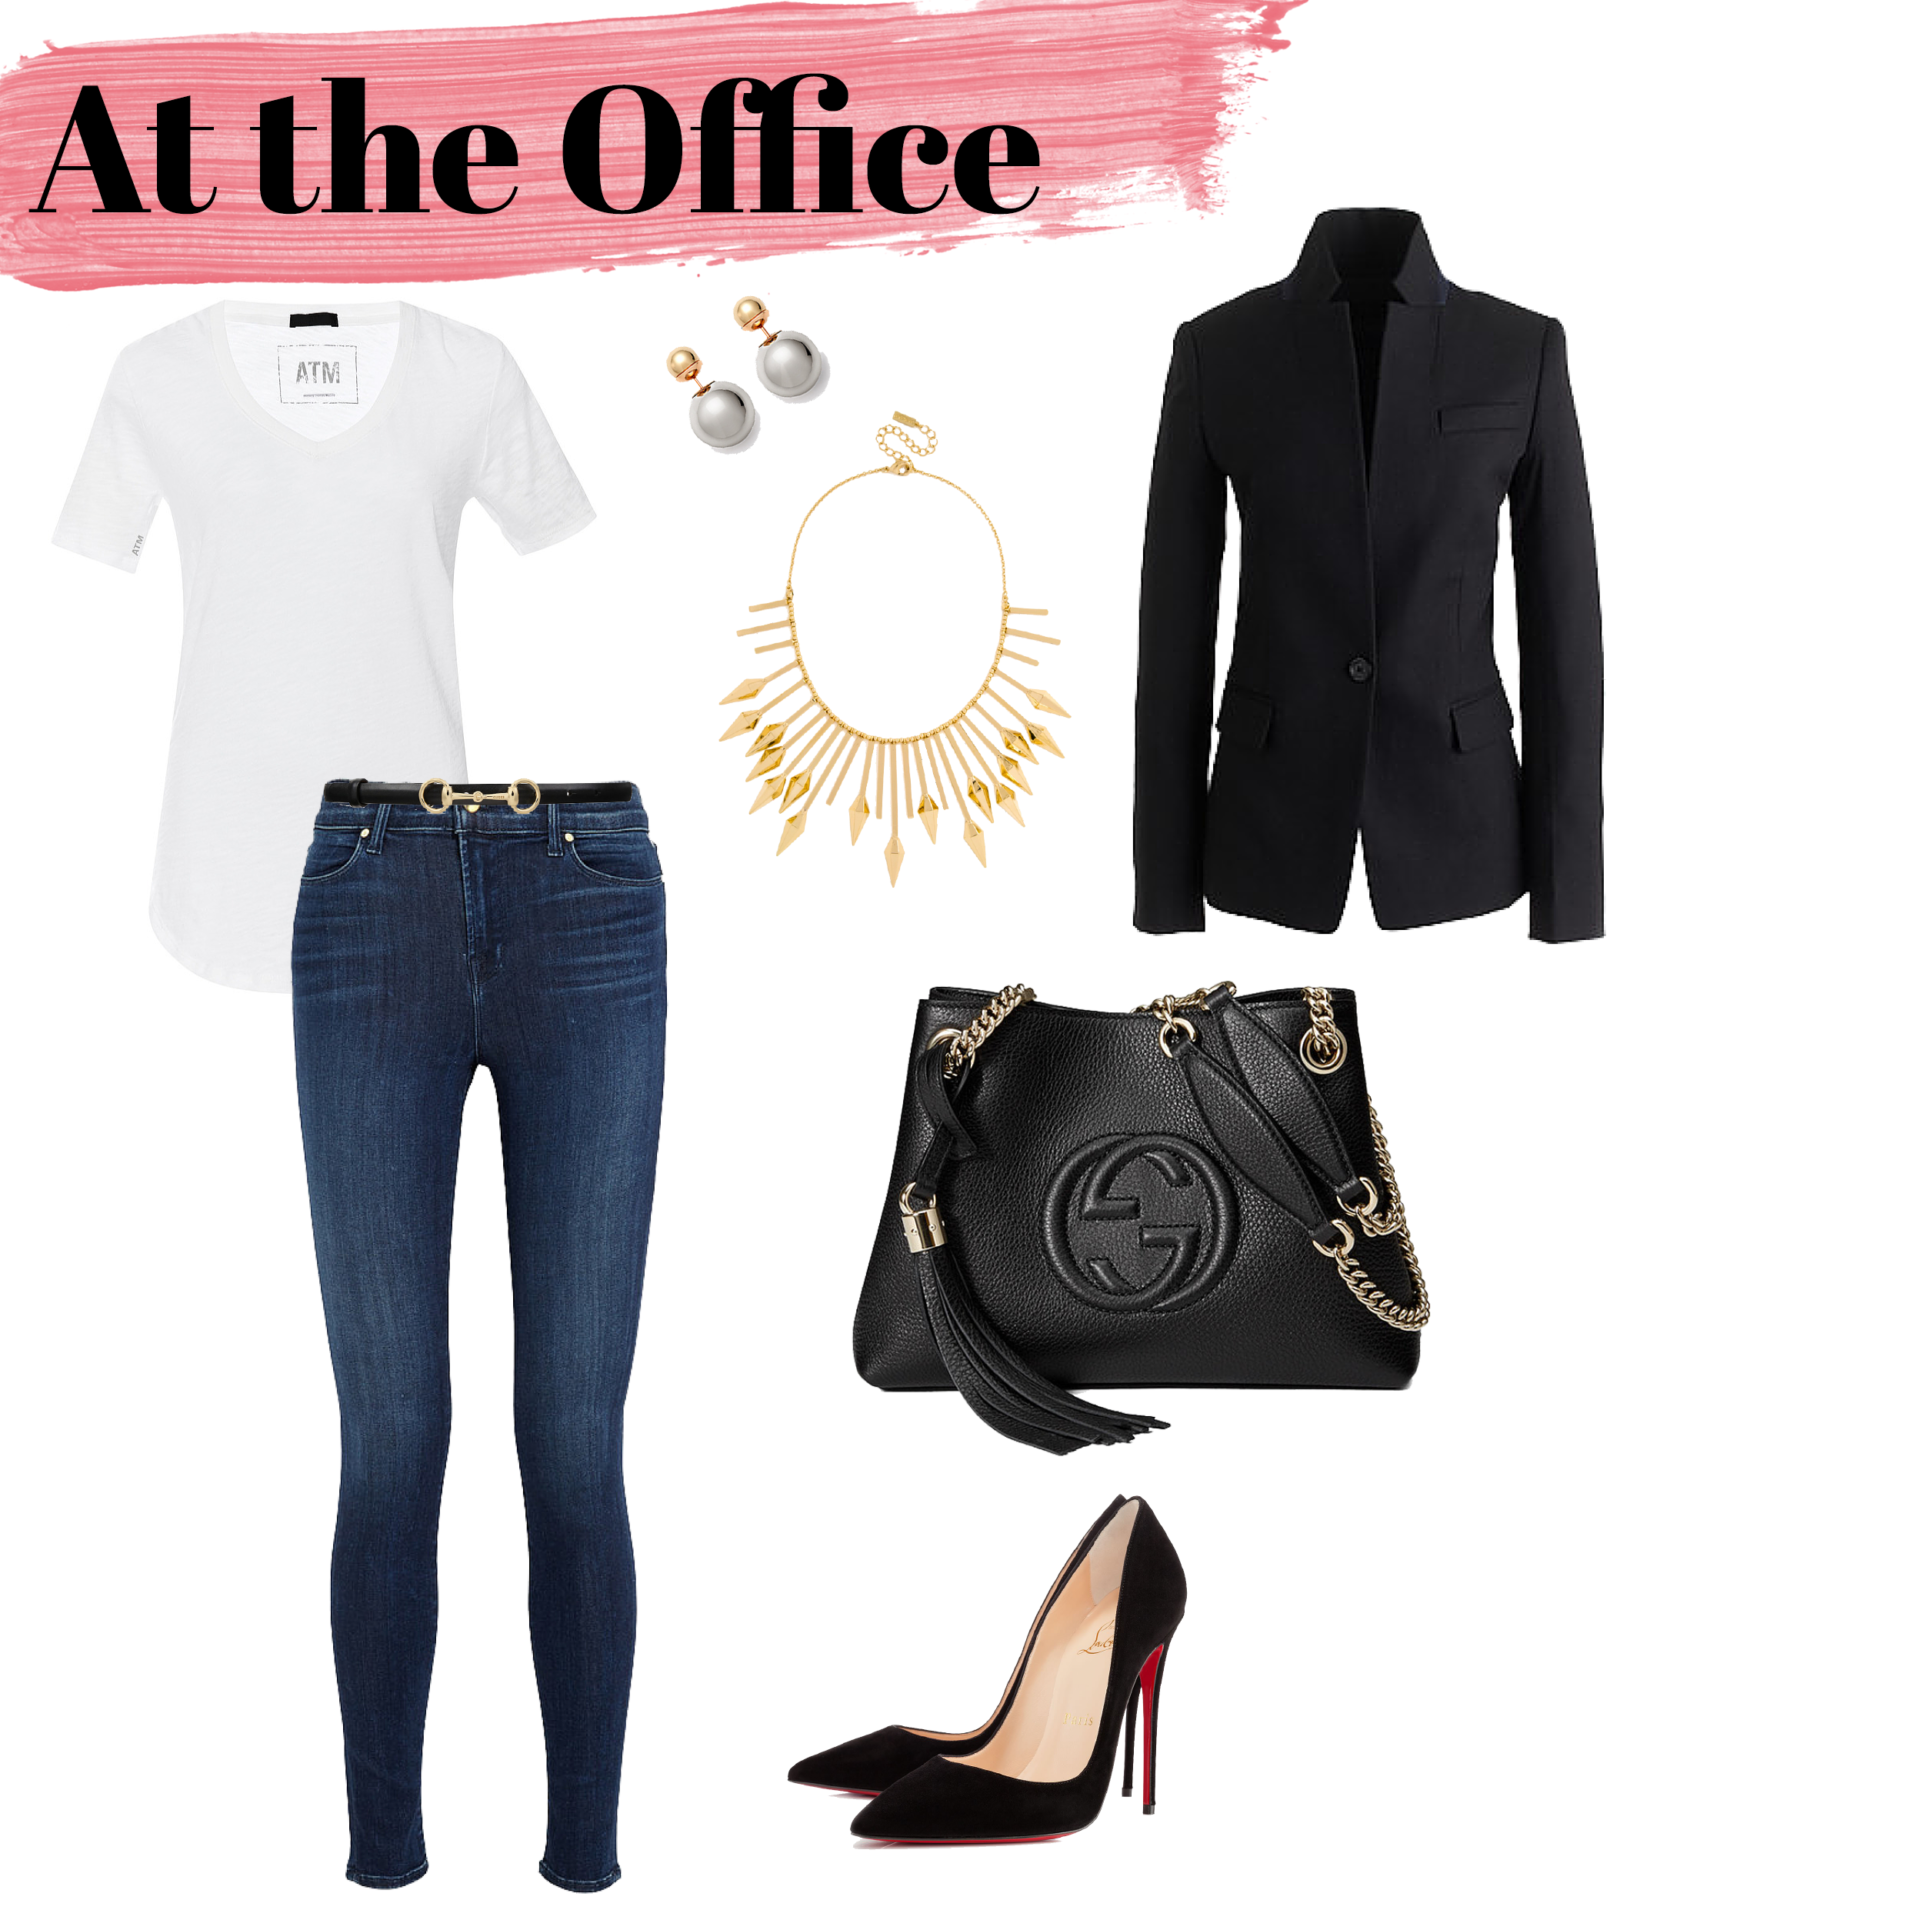 OverExposed_JeansTee_Office_Accessorize